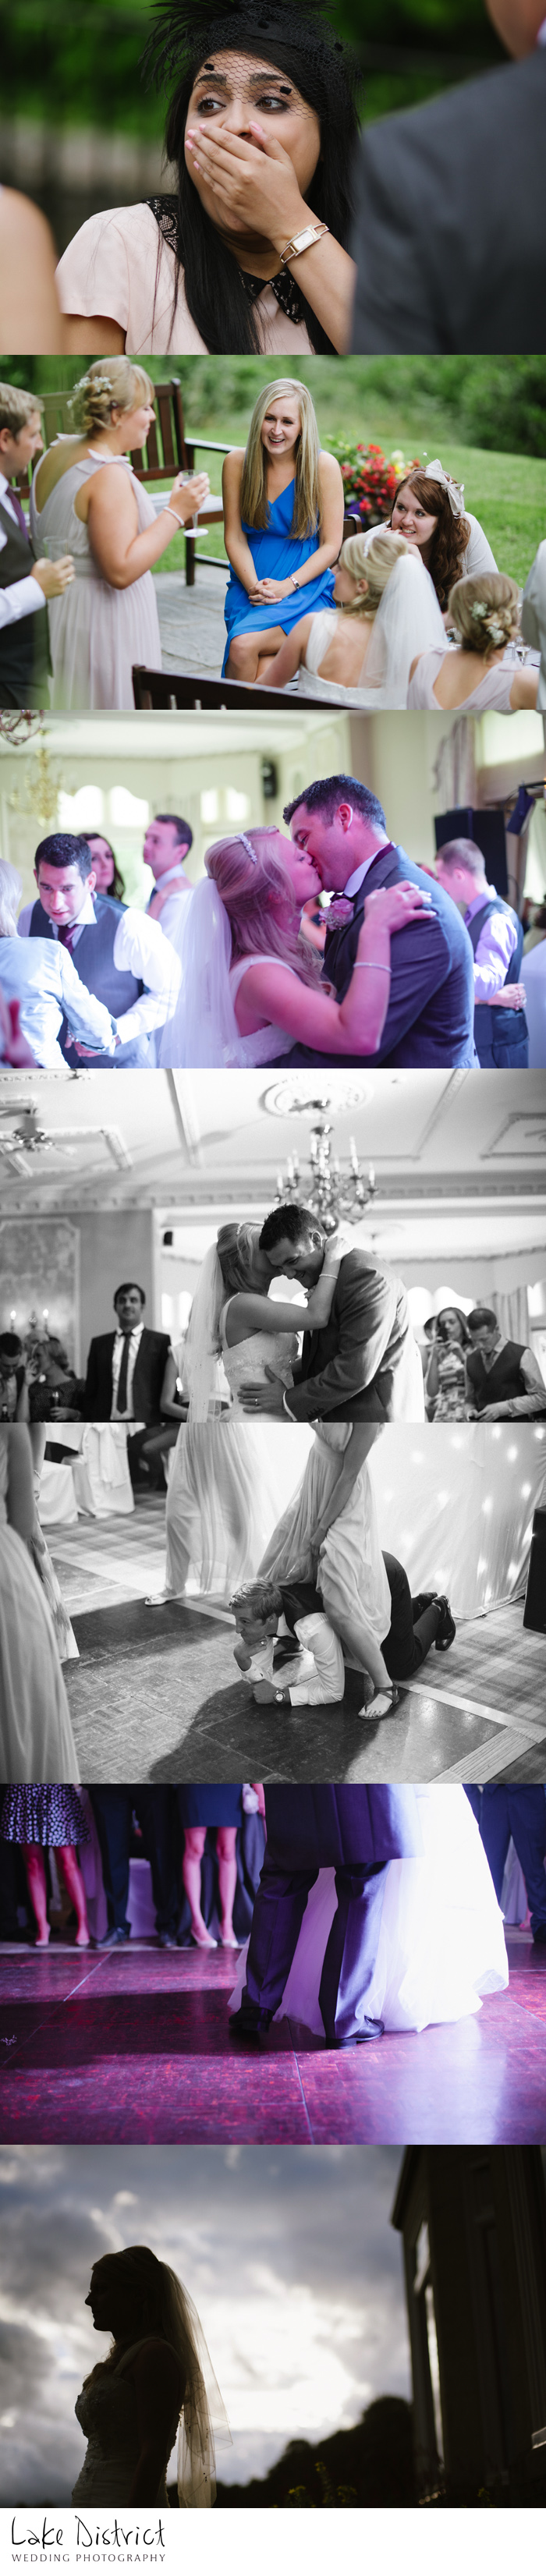 First dance images at the Merewood hotel in CUmbria